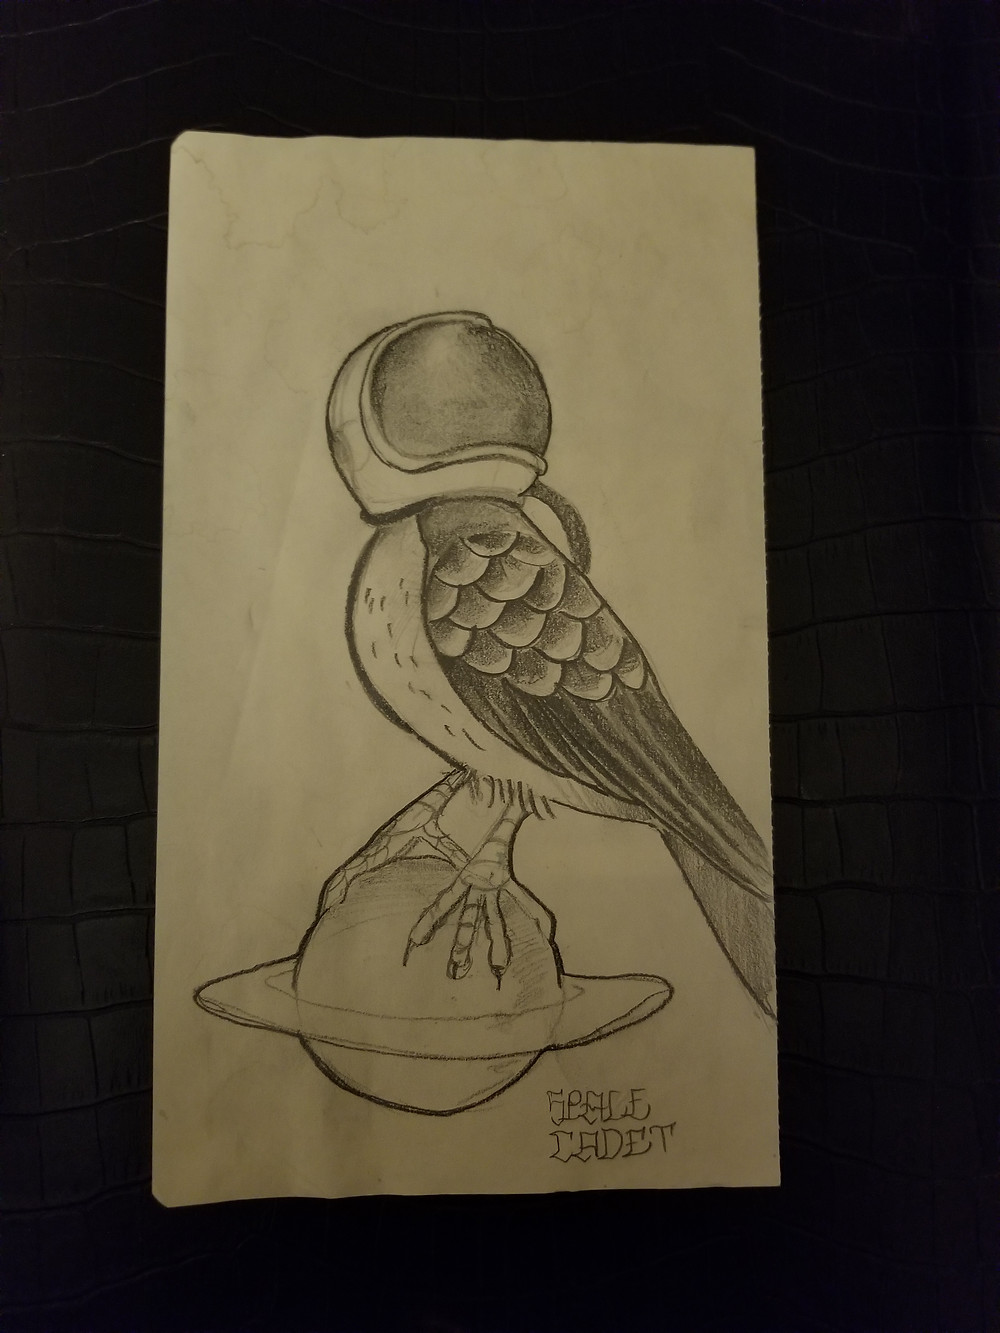 bird, saturn, astronaut, space bird, bird in space, sketch, george, ndgns studio, art